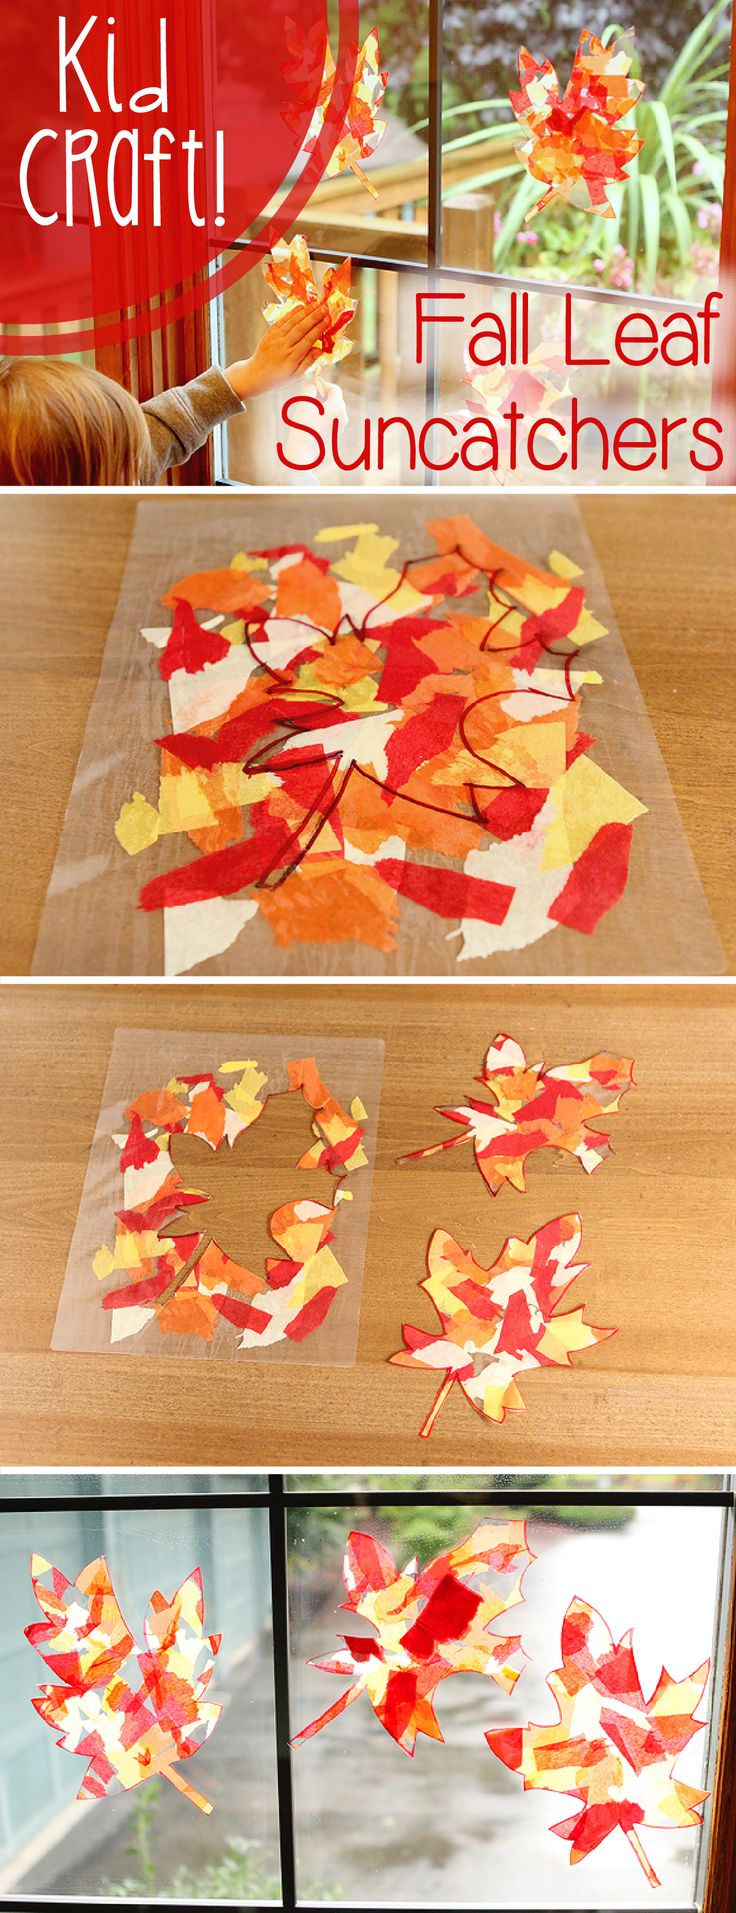 Fall color leaf sun-catchers that will brighten up your home while also being a fun craft for the kids.